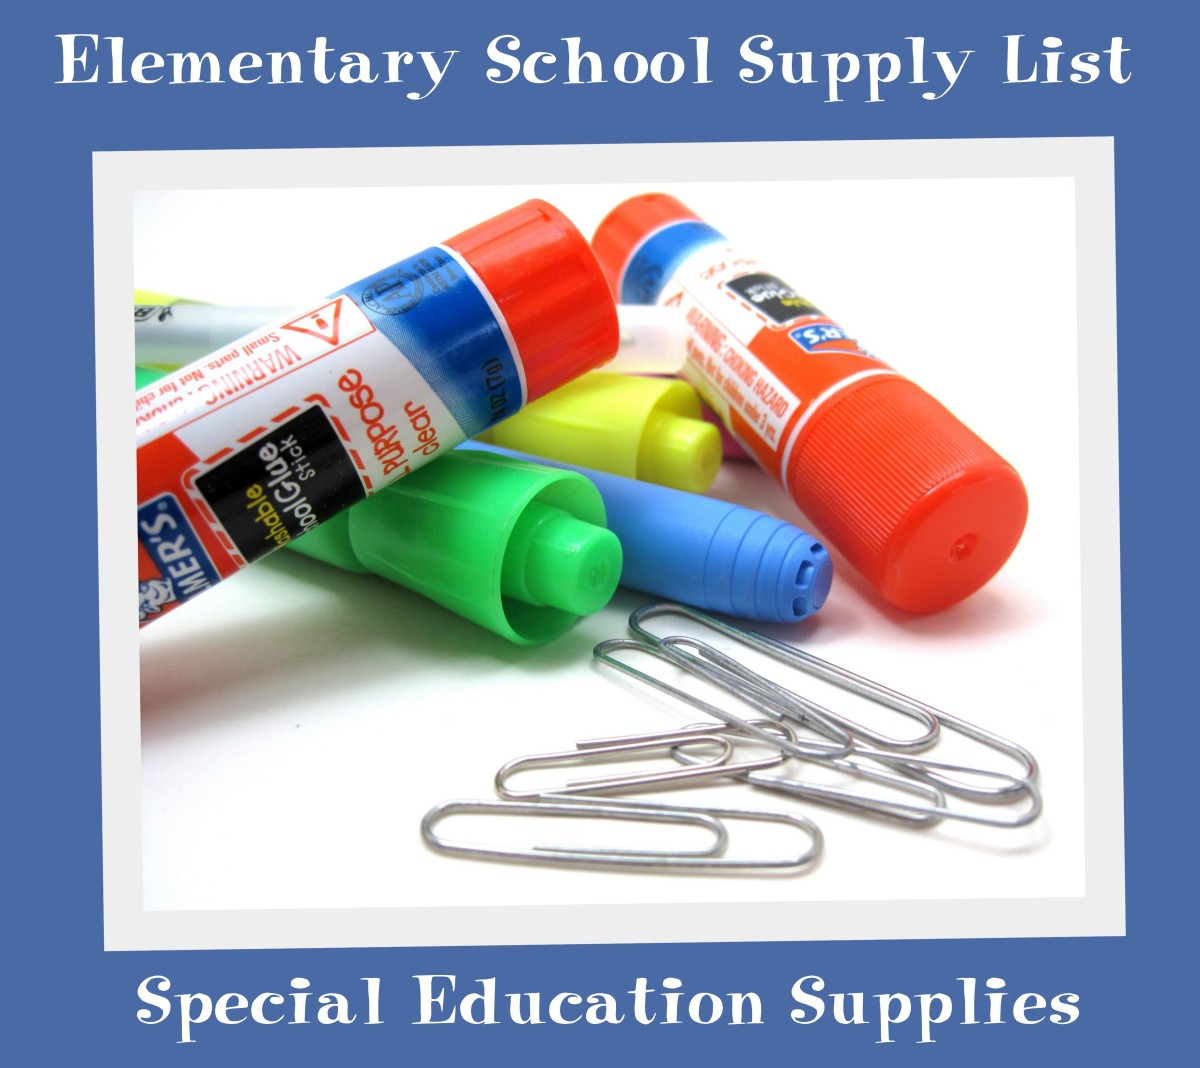 Elementary School Supply List: Special Education Supplies